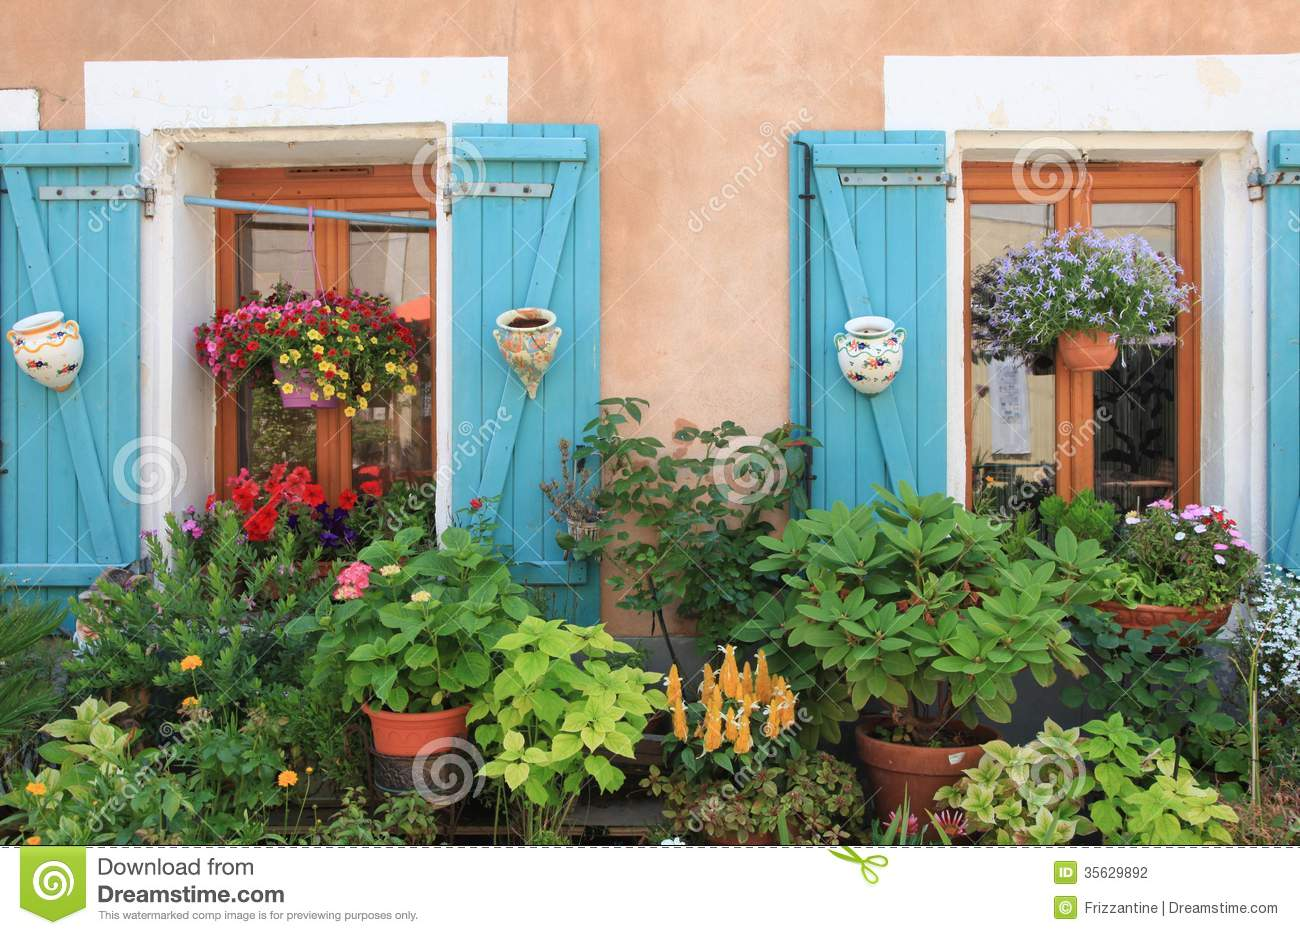 Flowers and plants decorating house exterior stock - Plantas perennes exterior ...